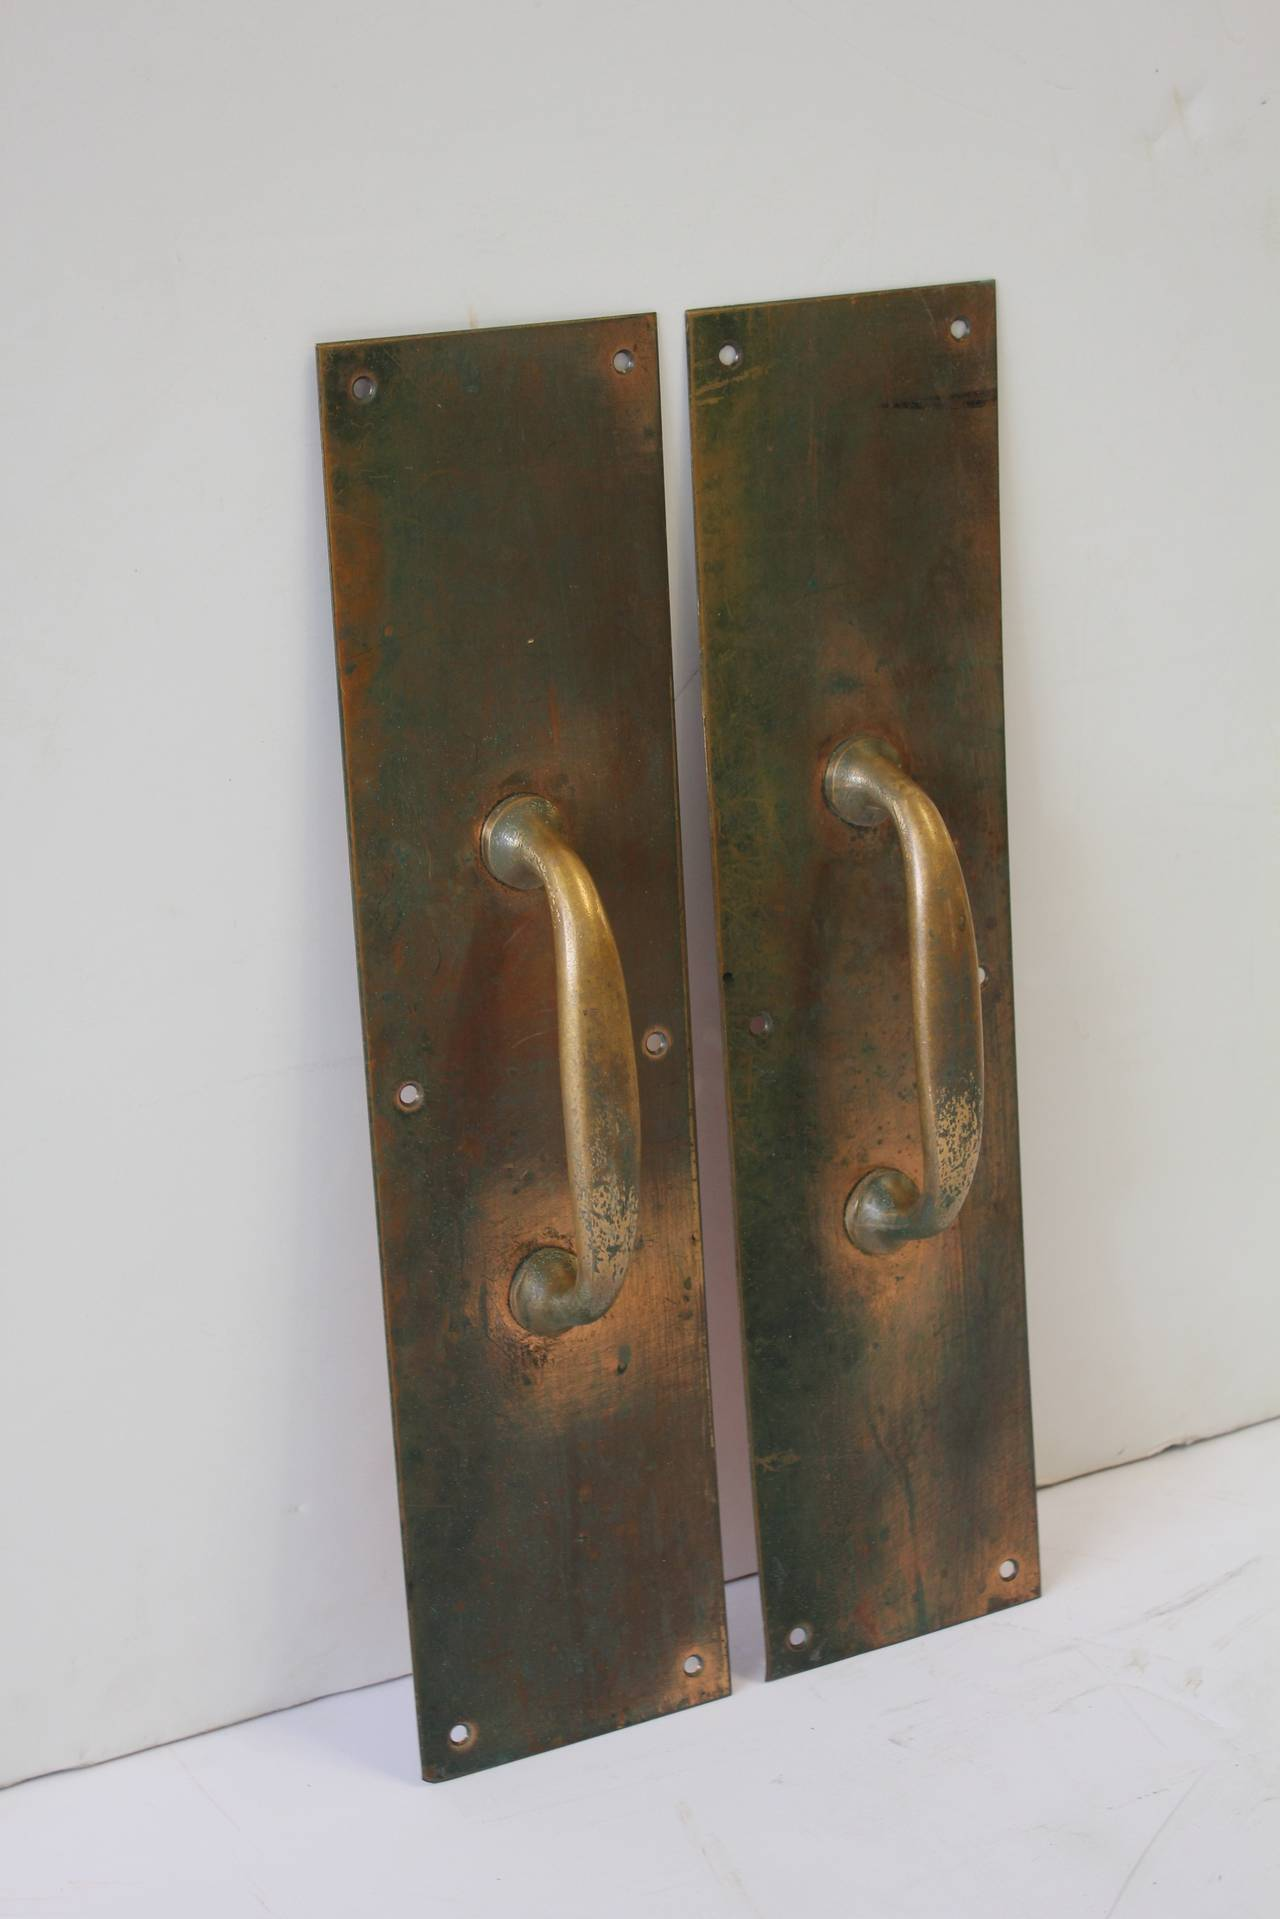 Antique Copper And Brass Entry Door Pull Hardware At 1stdibs